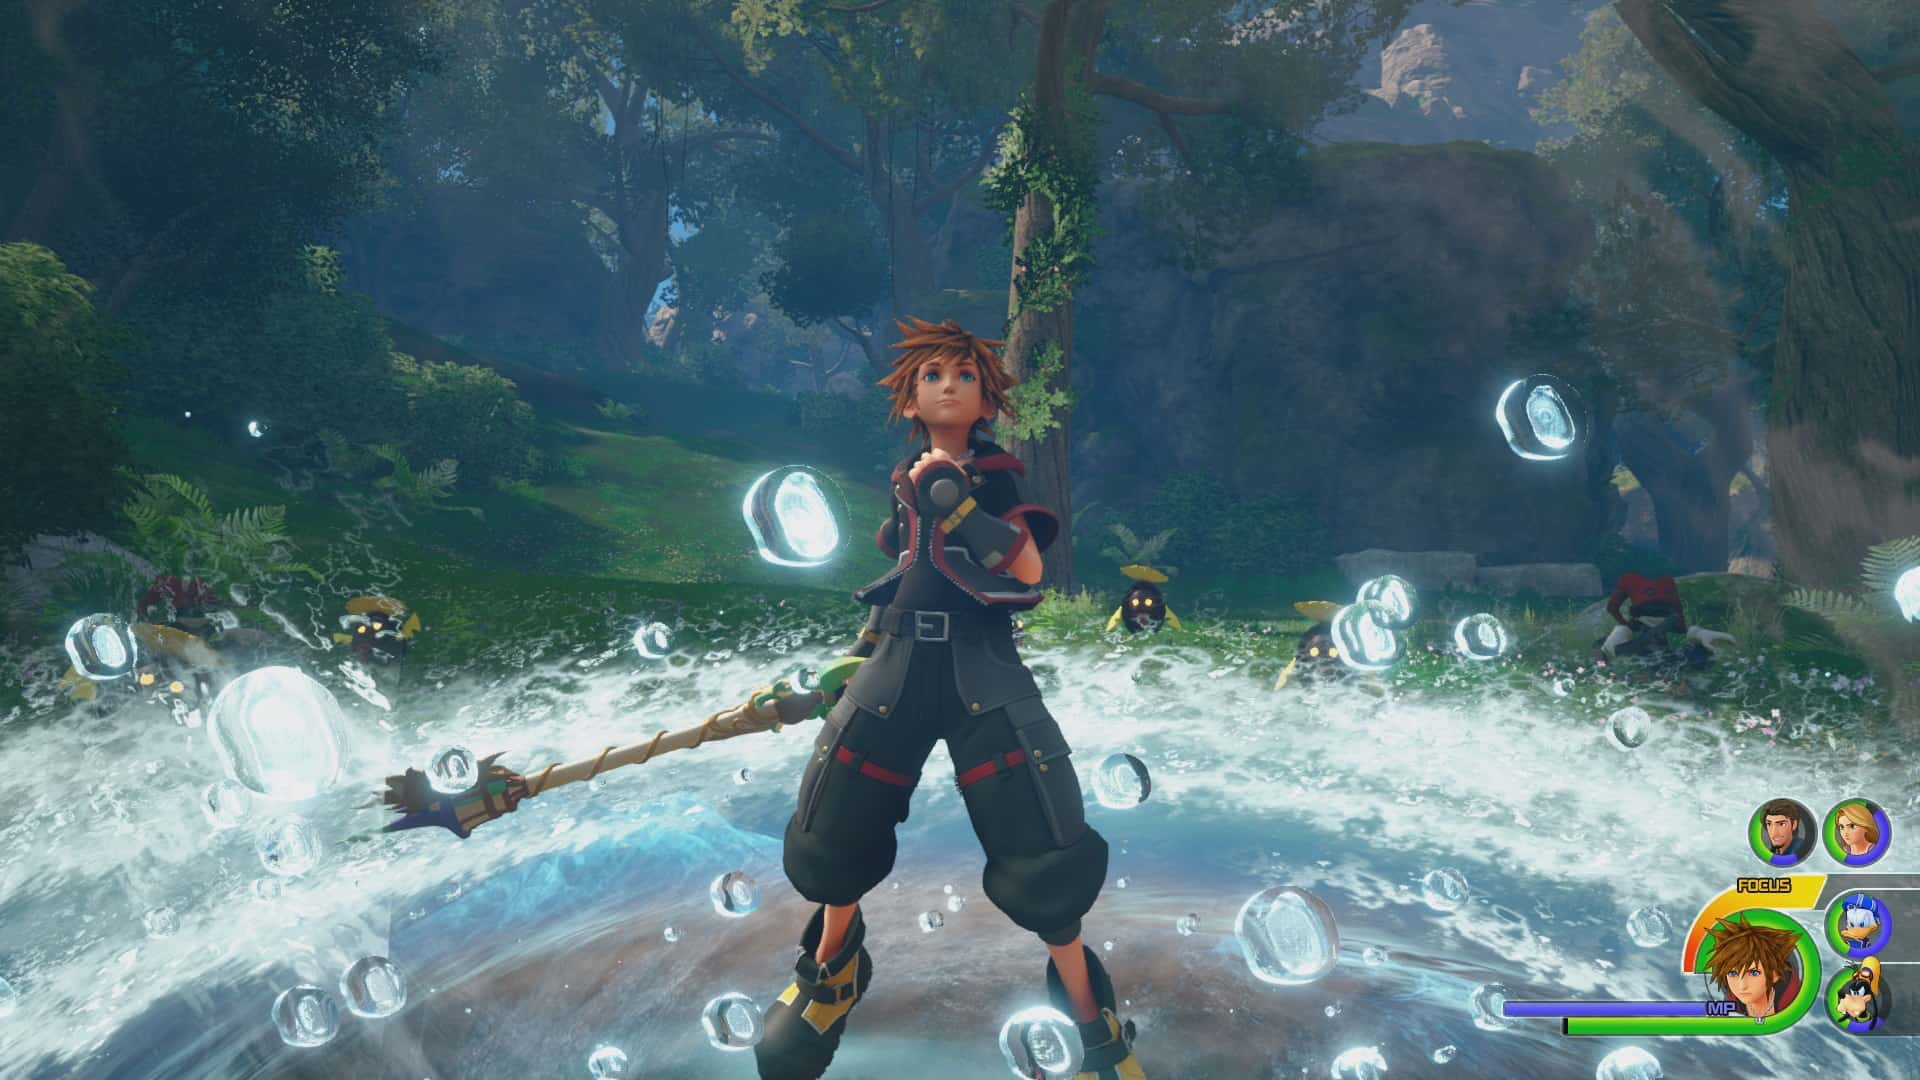 kingdom hearts 3 D23 Japan Battle Screenshot 14 1518440967 - KINGDOM HEARTS 3 apre le porte a Monsters & Co.